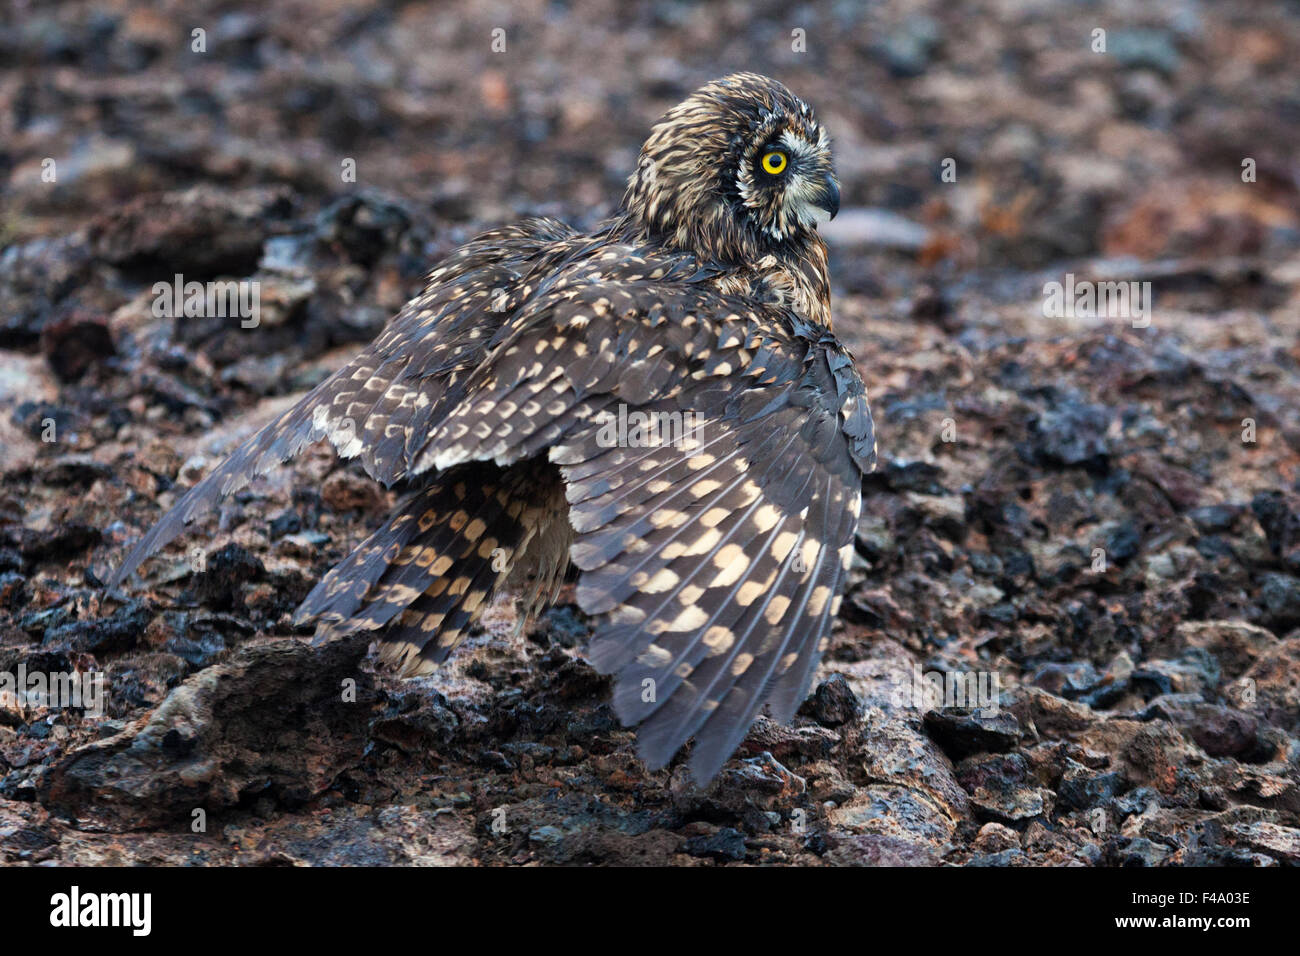 Short-eared owl (Asio flammeus galapagoensis) mantling, camouflaged against lava rock - Stock Image